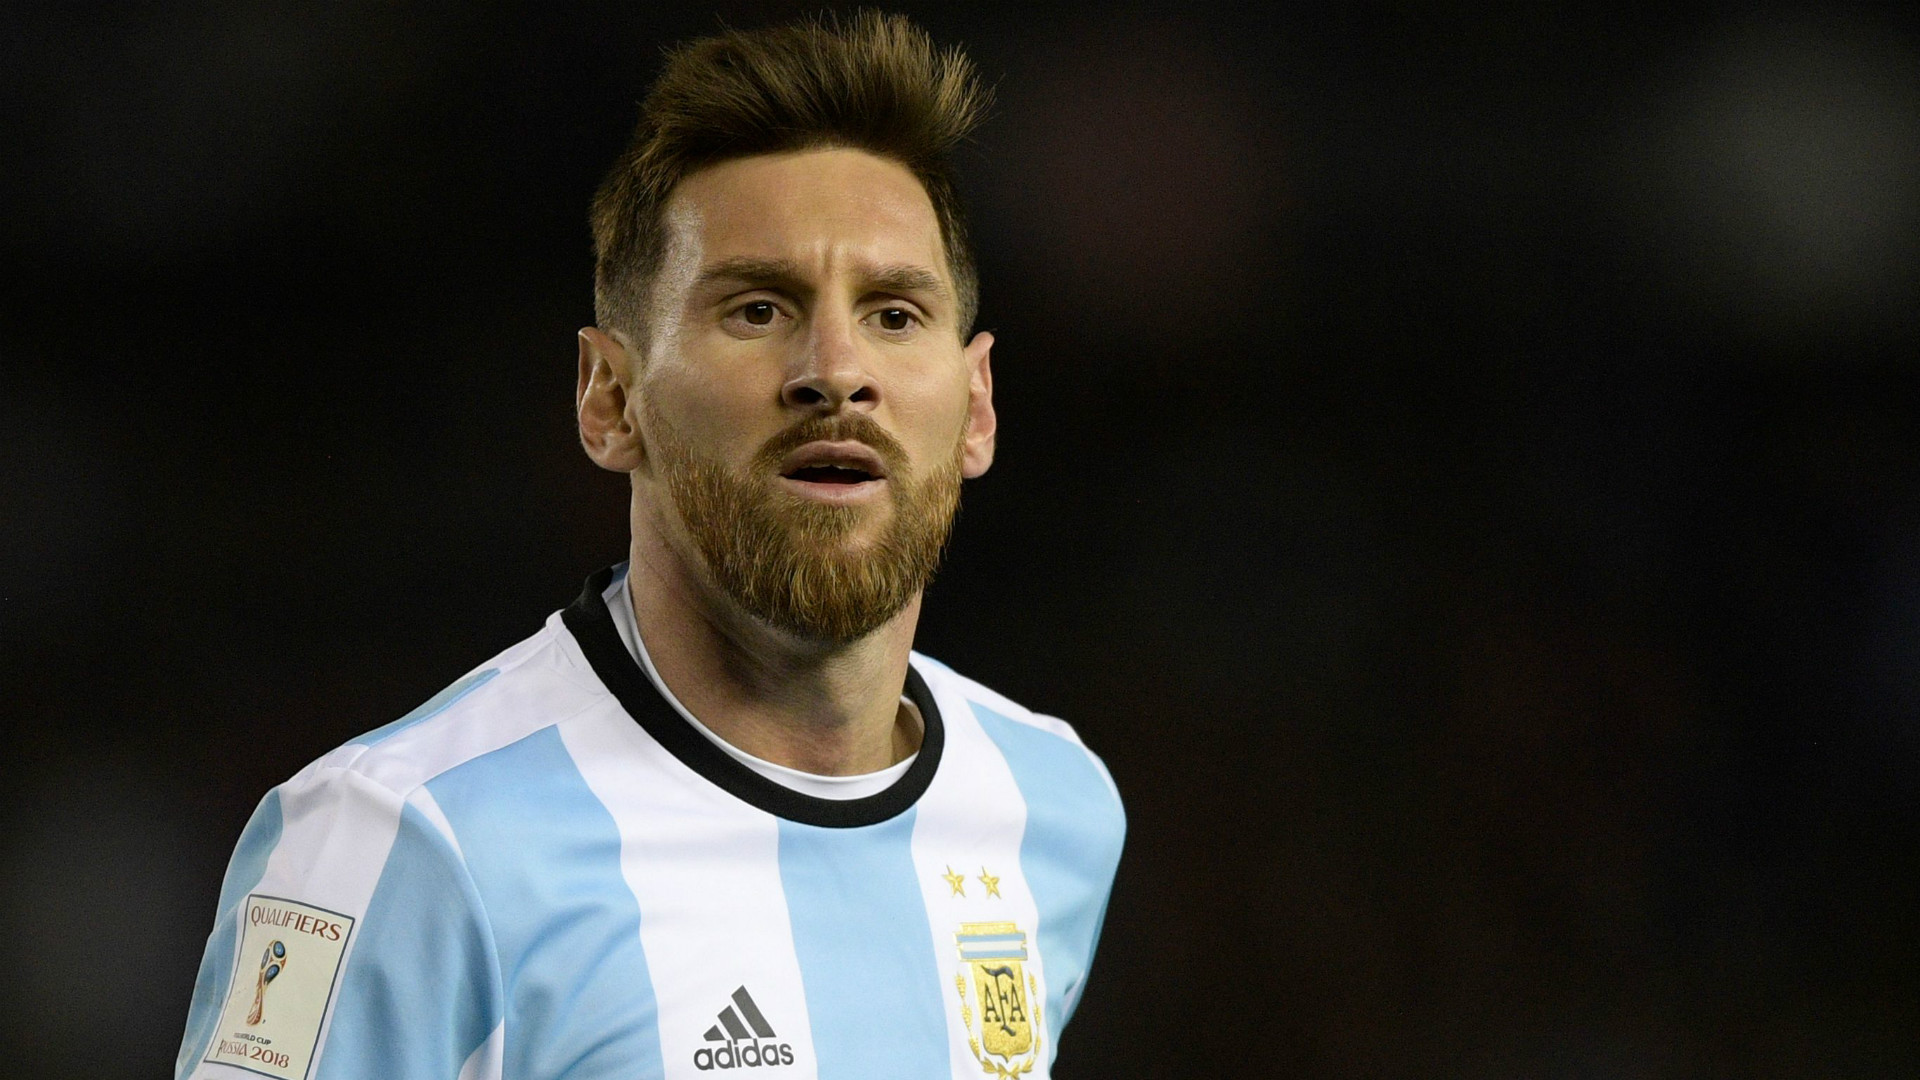 Lionel Messi's World Cup hopes hanging by a thread after Argentina draw